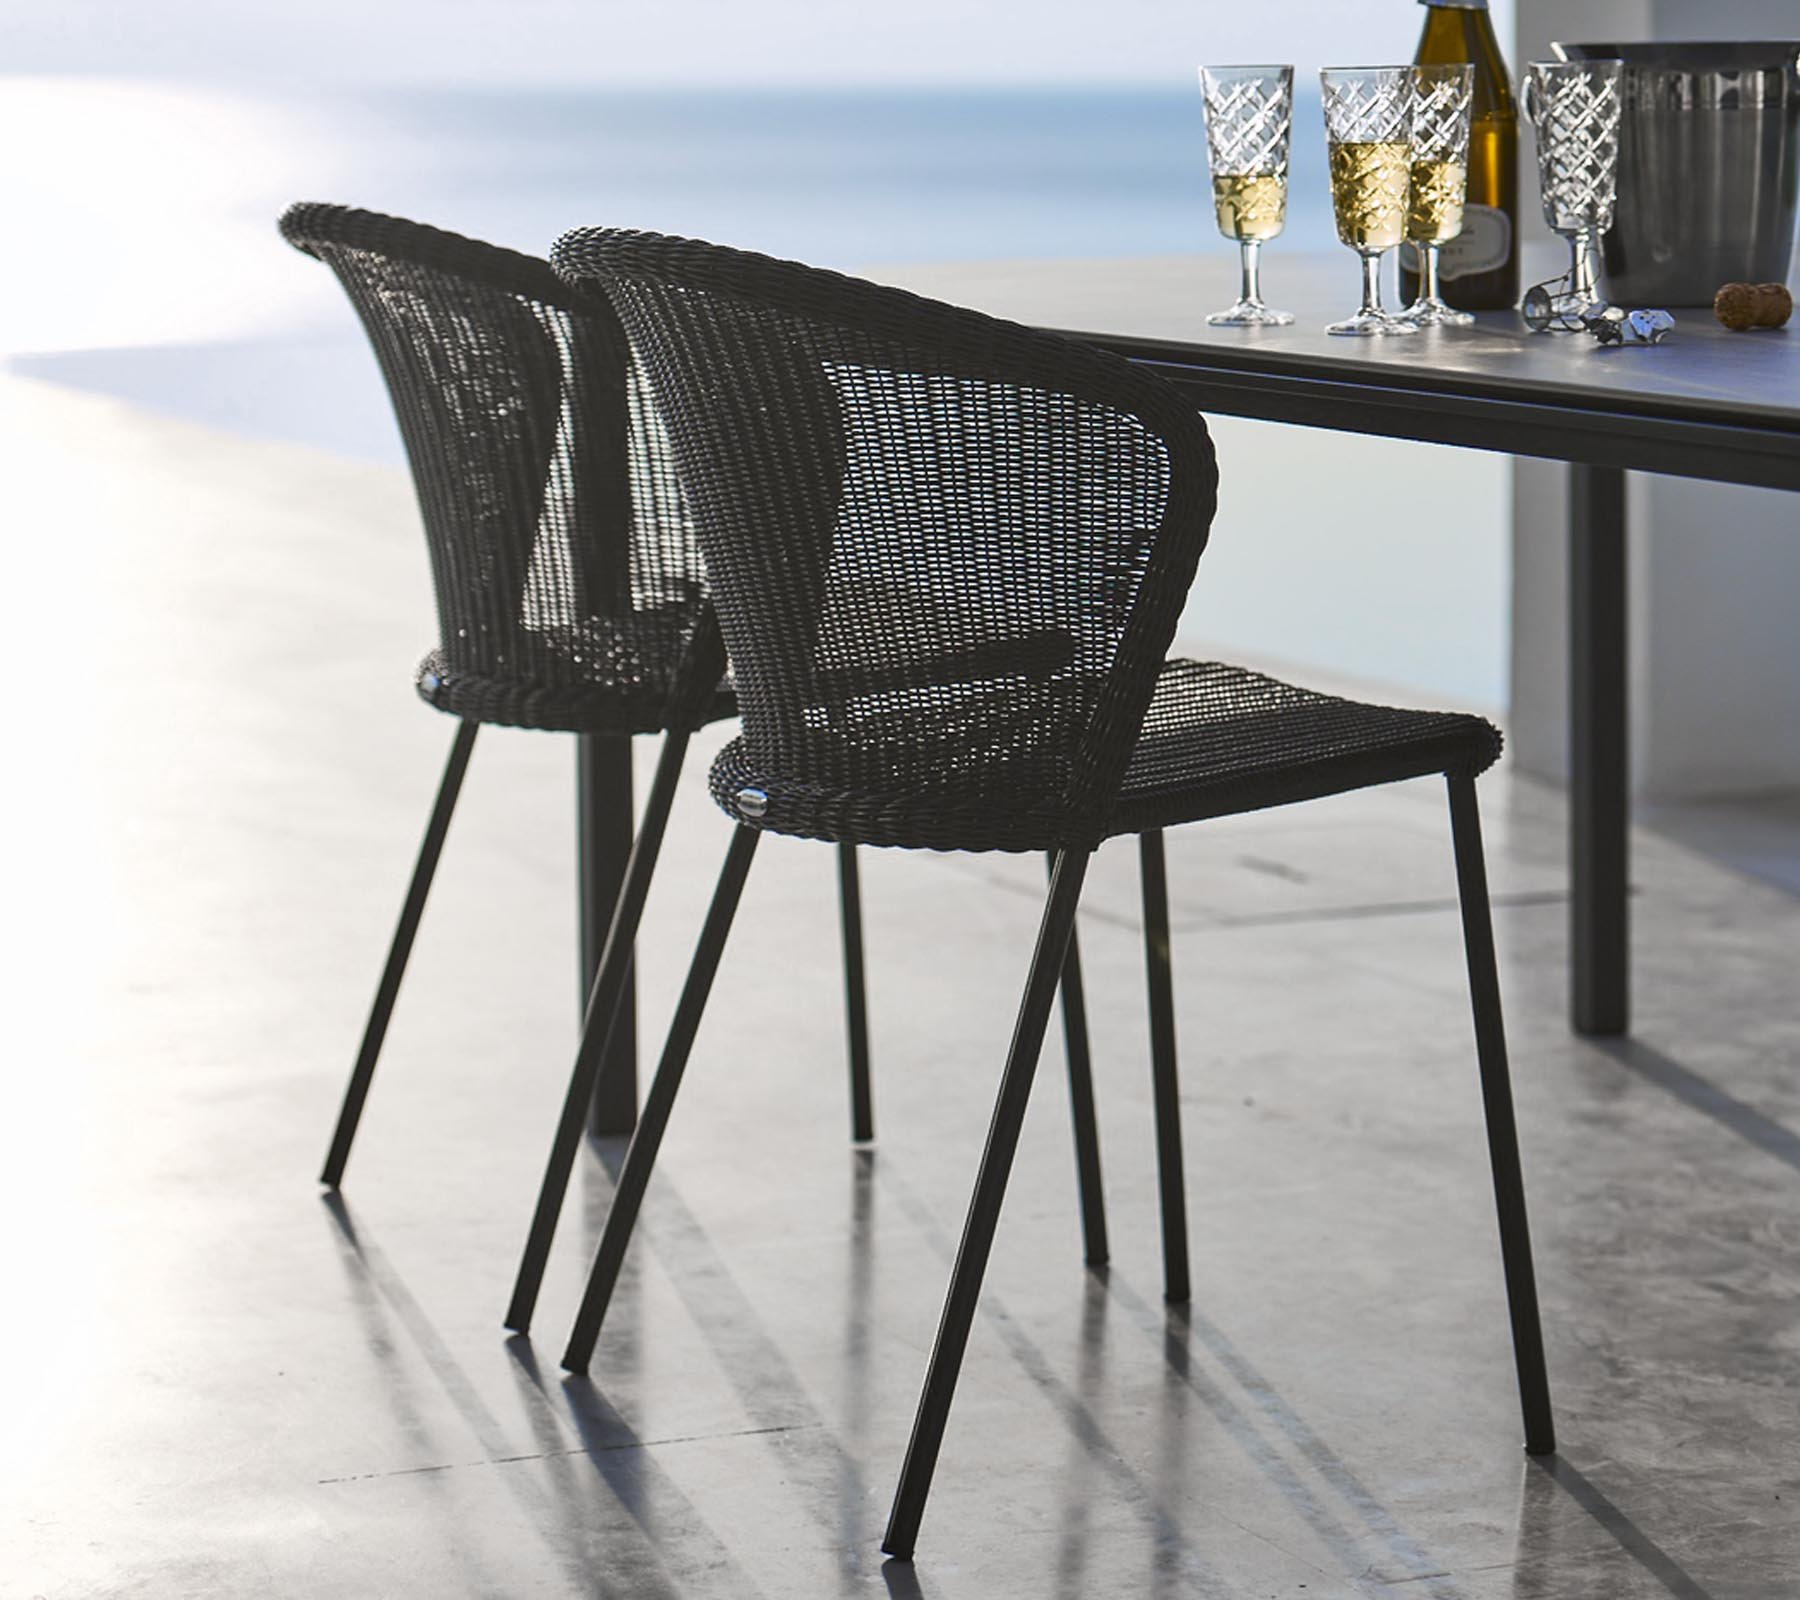 Lean Chair from Cane-line, designed by Welling/Ludvik